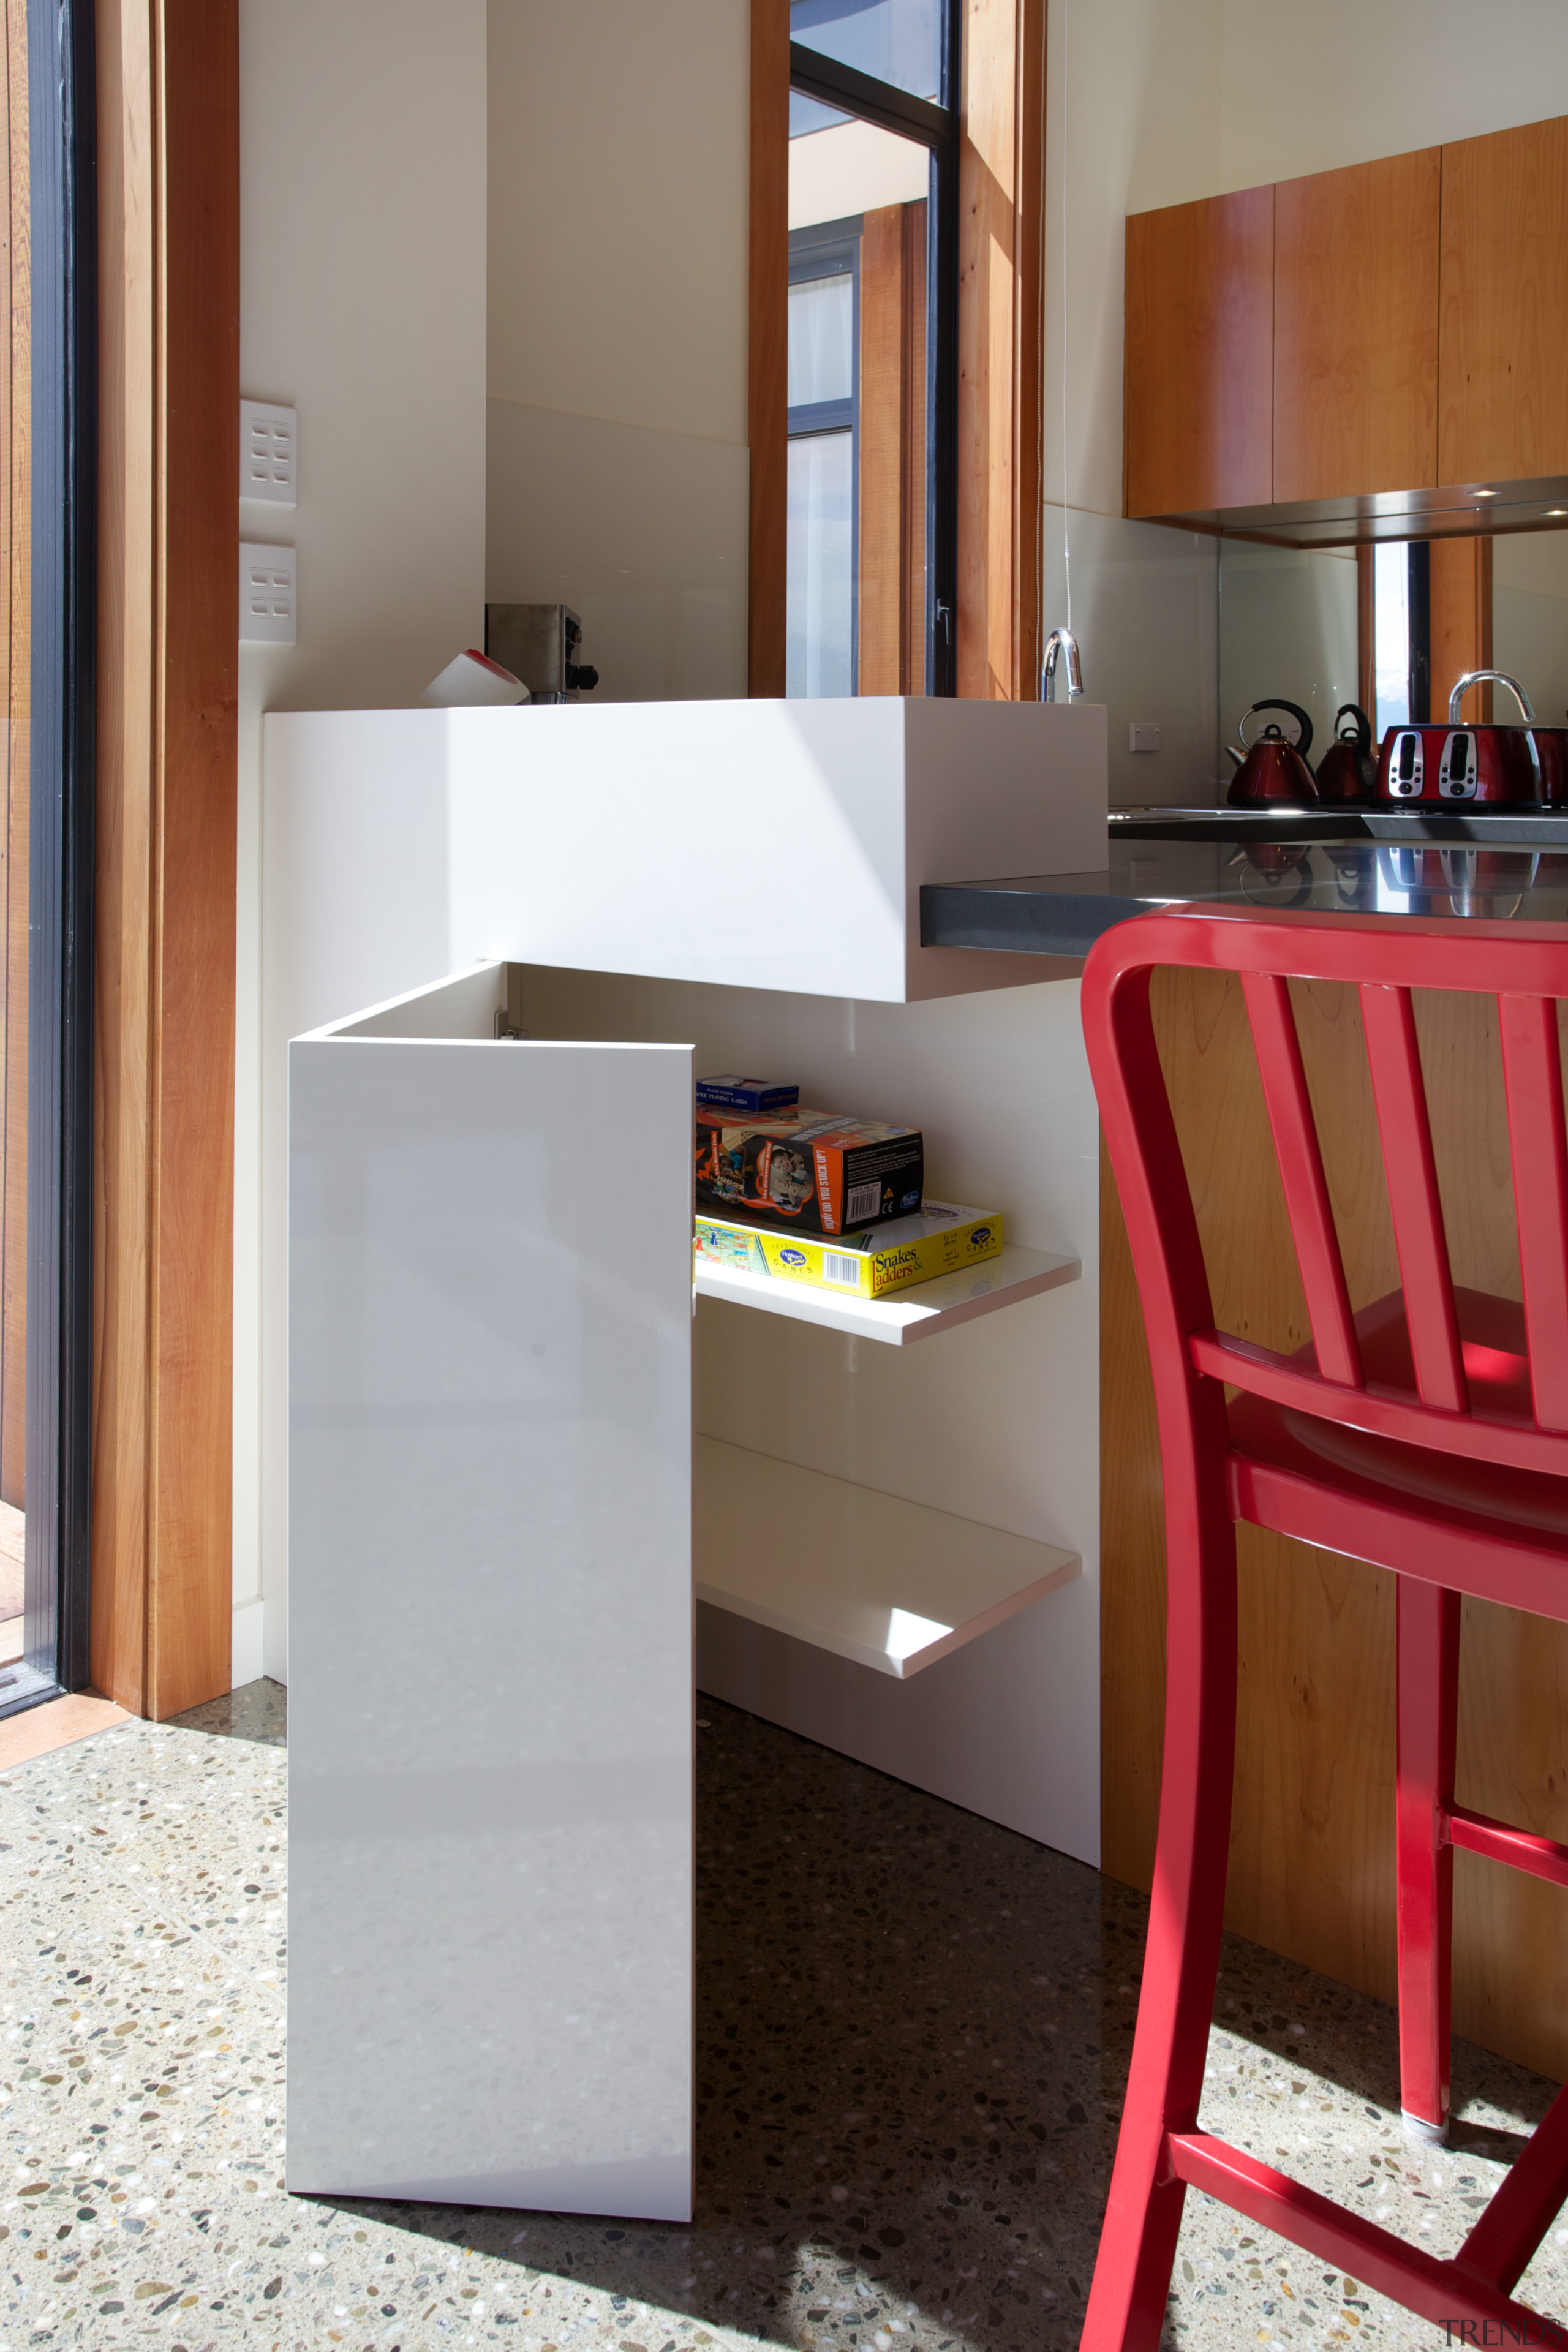 This side cabinet in a kitchen in a floor, flooring, furniture, interior design, product design, shelf, shelving, table, gray